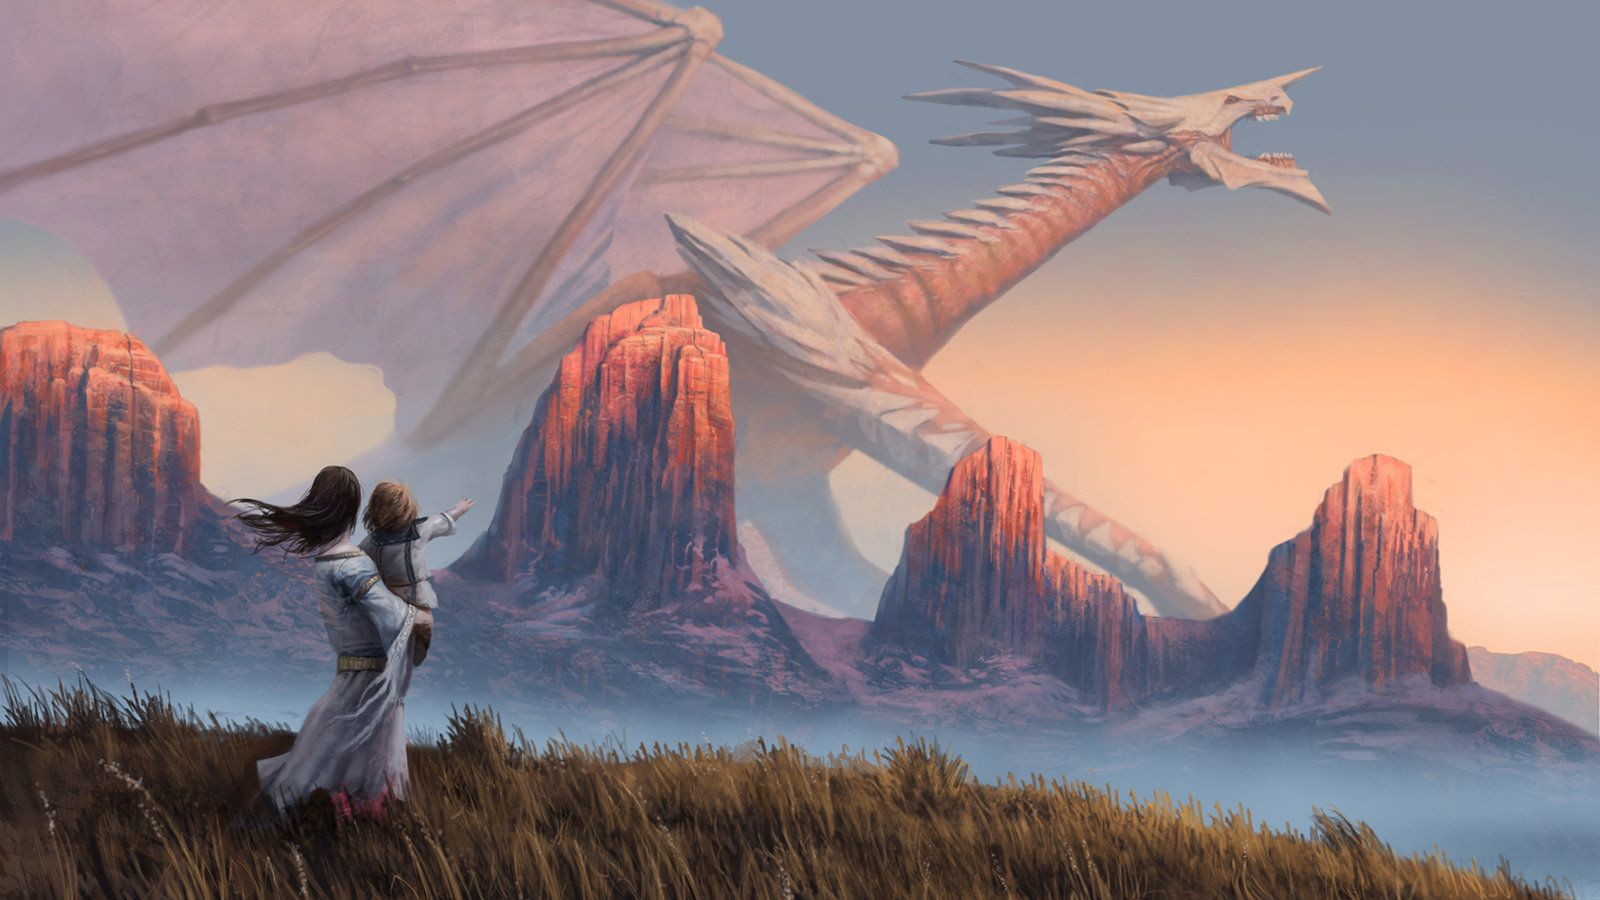 Giant Dragon Wallpapers Top Free Giant Dragon Backgrounds